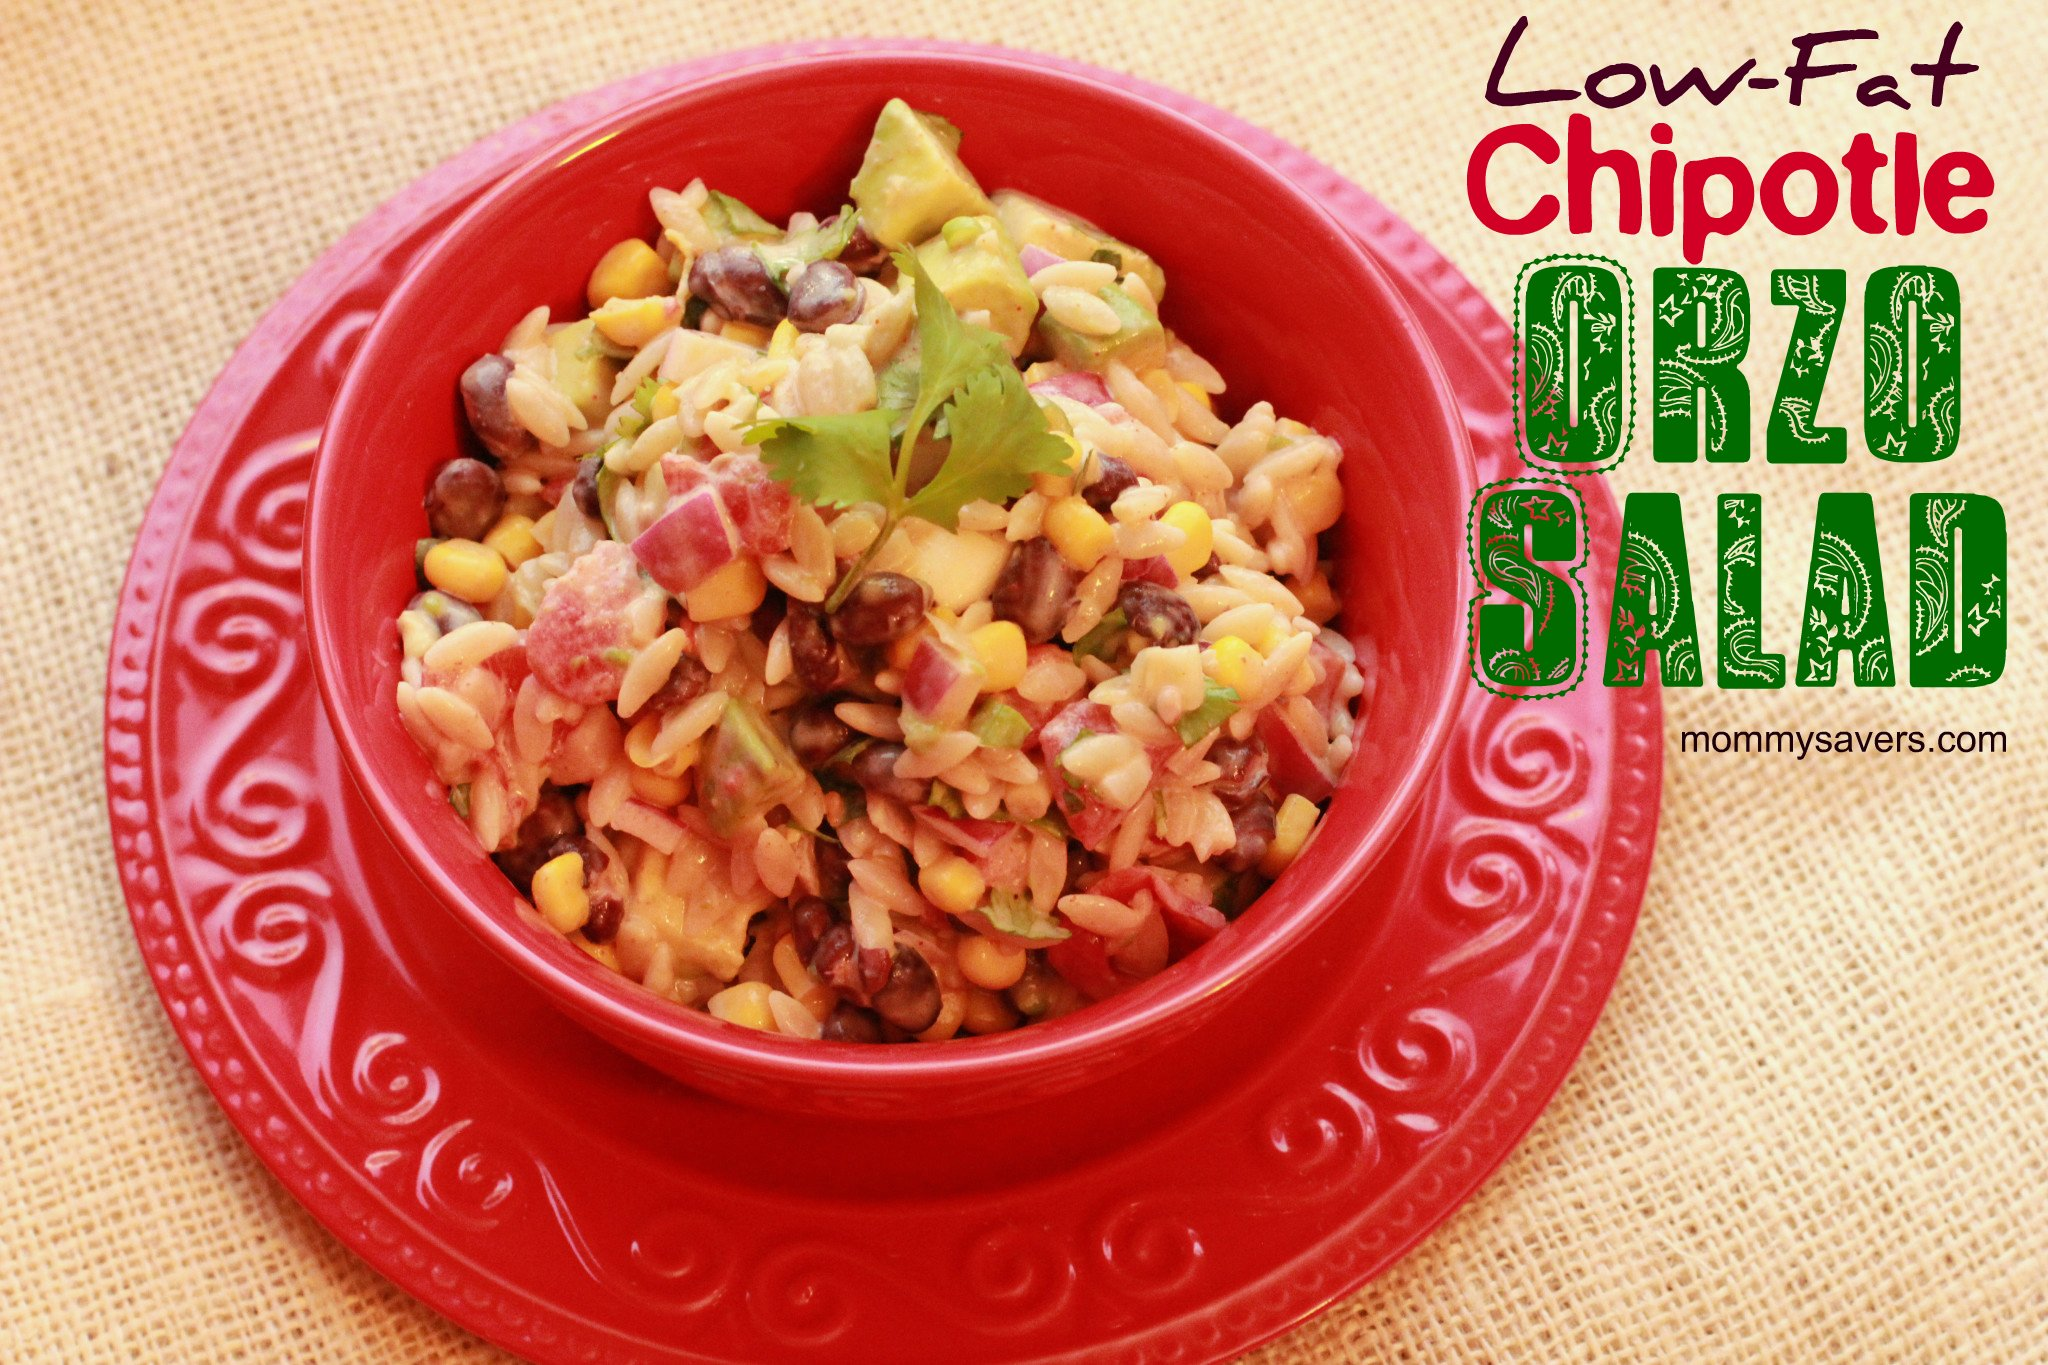 low-fat chipotle orzo salad